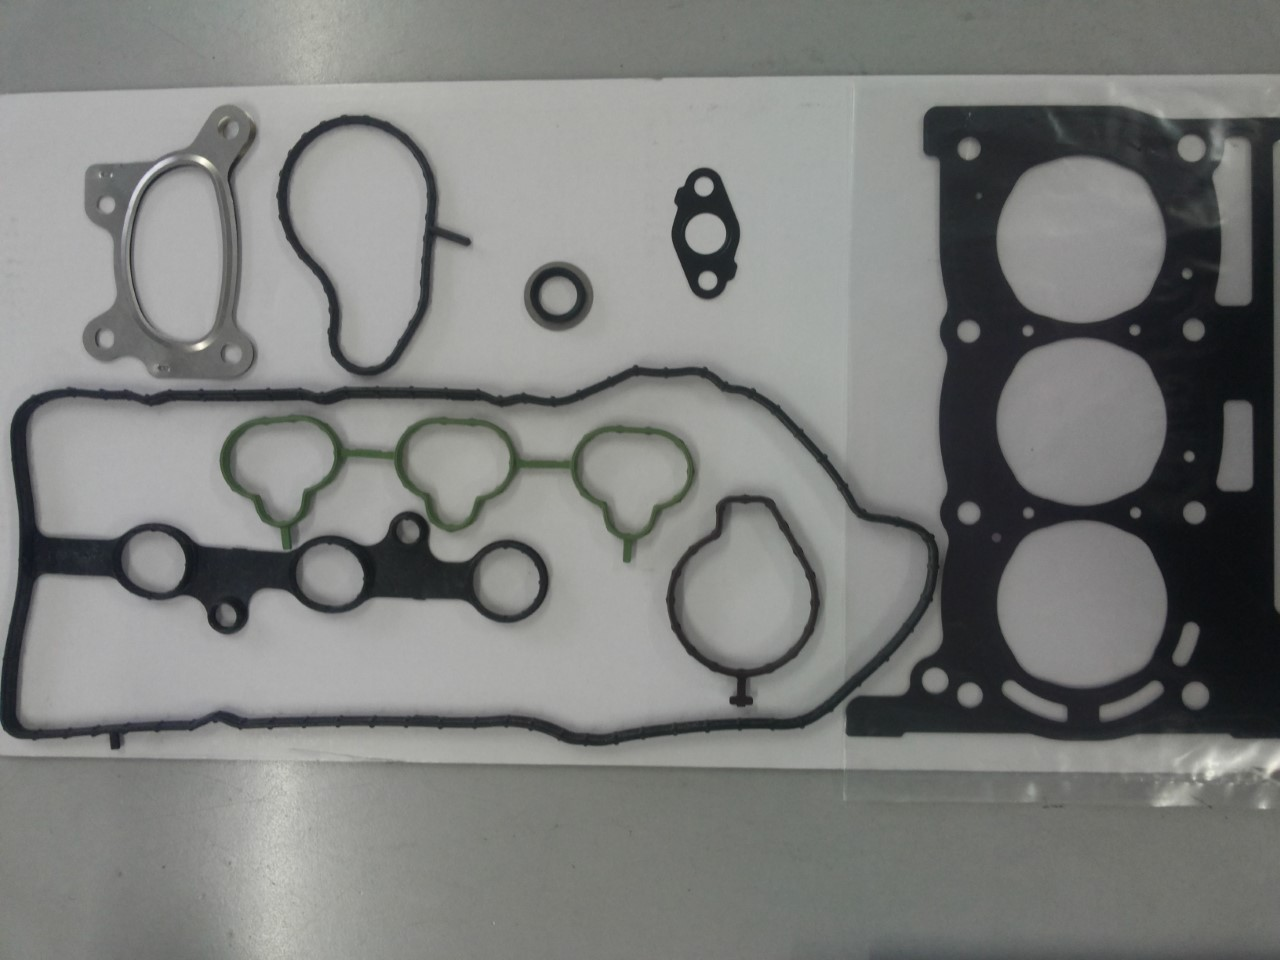 small resolution of  1 3 variant of engine the 1 0 engine as stated in the brochure as a 1kr ve engine will this 1kr ve engine gasket have some surprise differences when